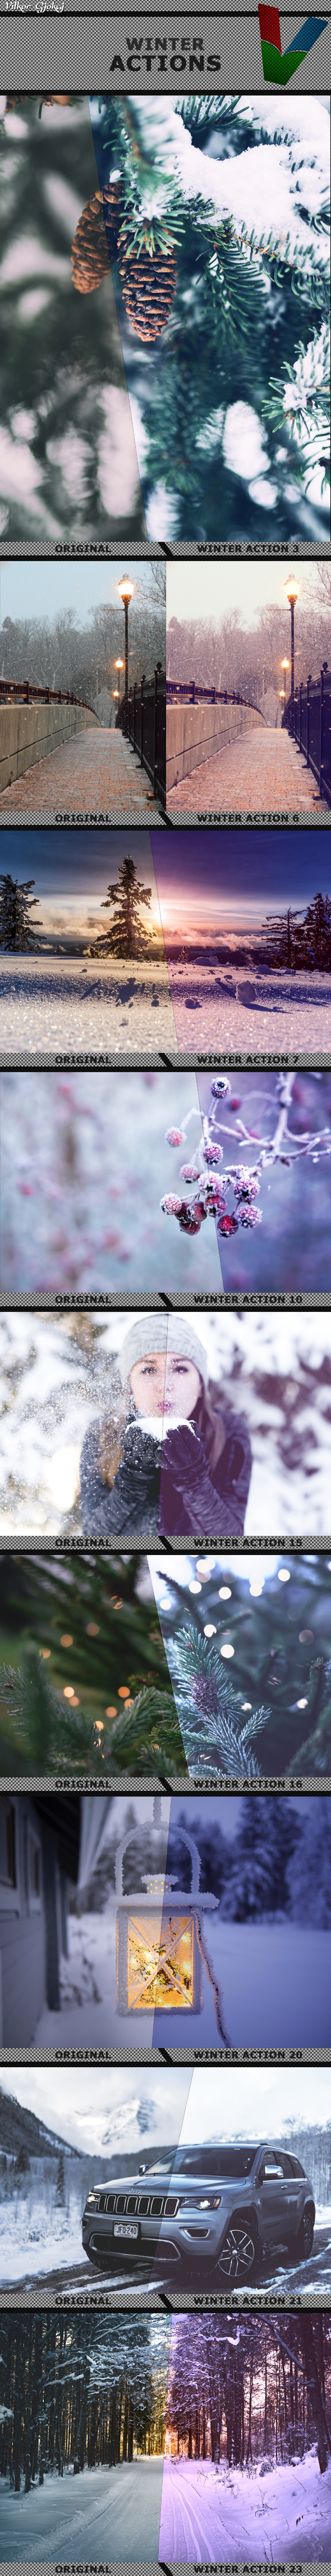 GraphicRiver Winter Actions 21051603